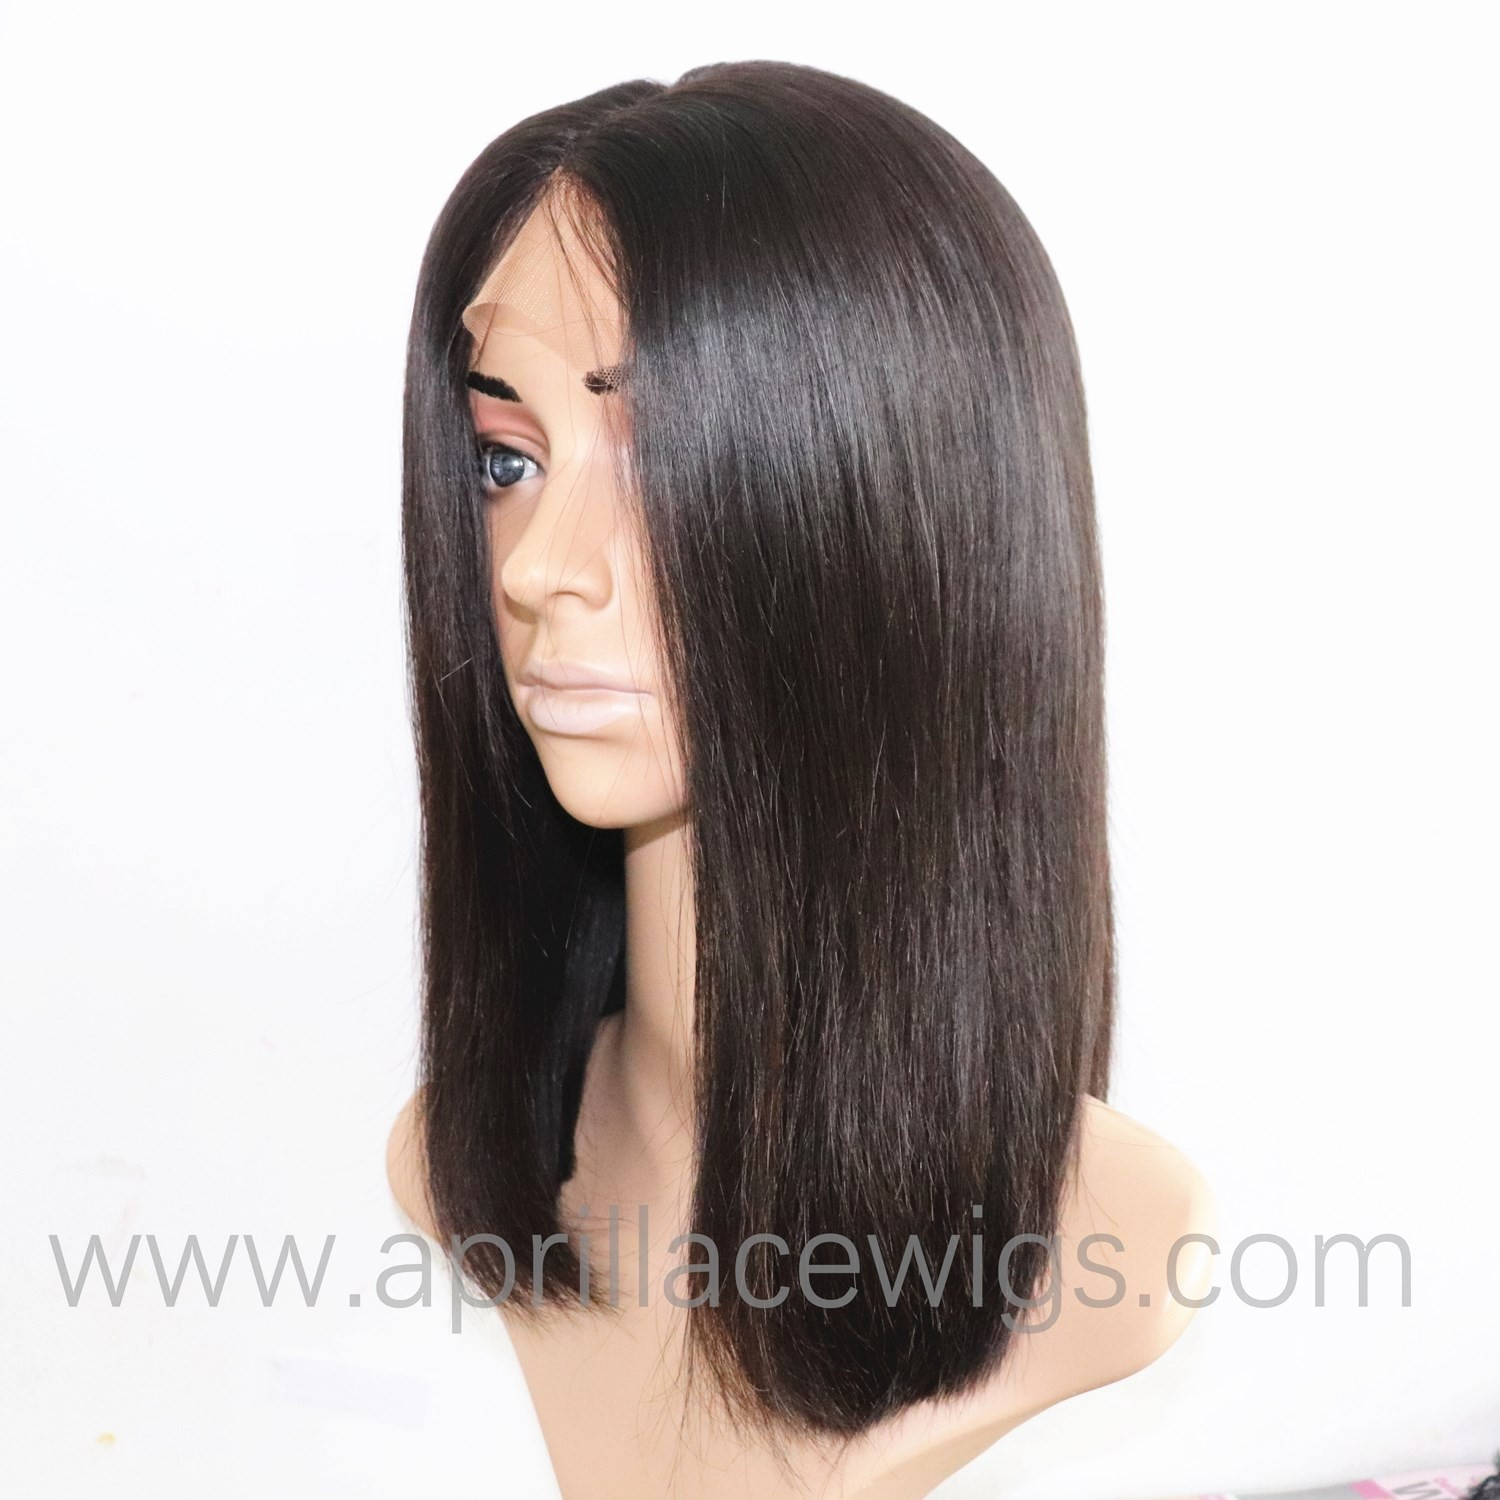 Virgin Human Hair 150% density Silk Top Closure Wig Bob Cut Natural Color